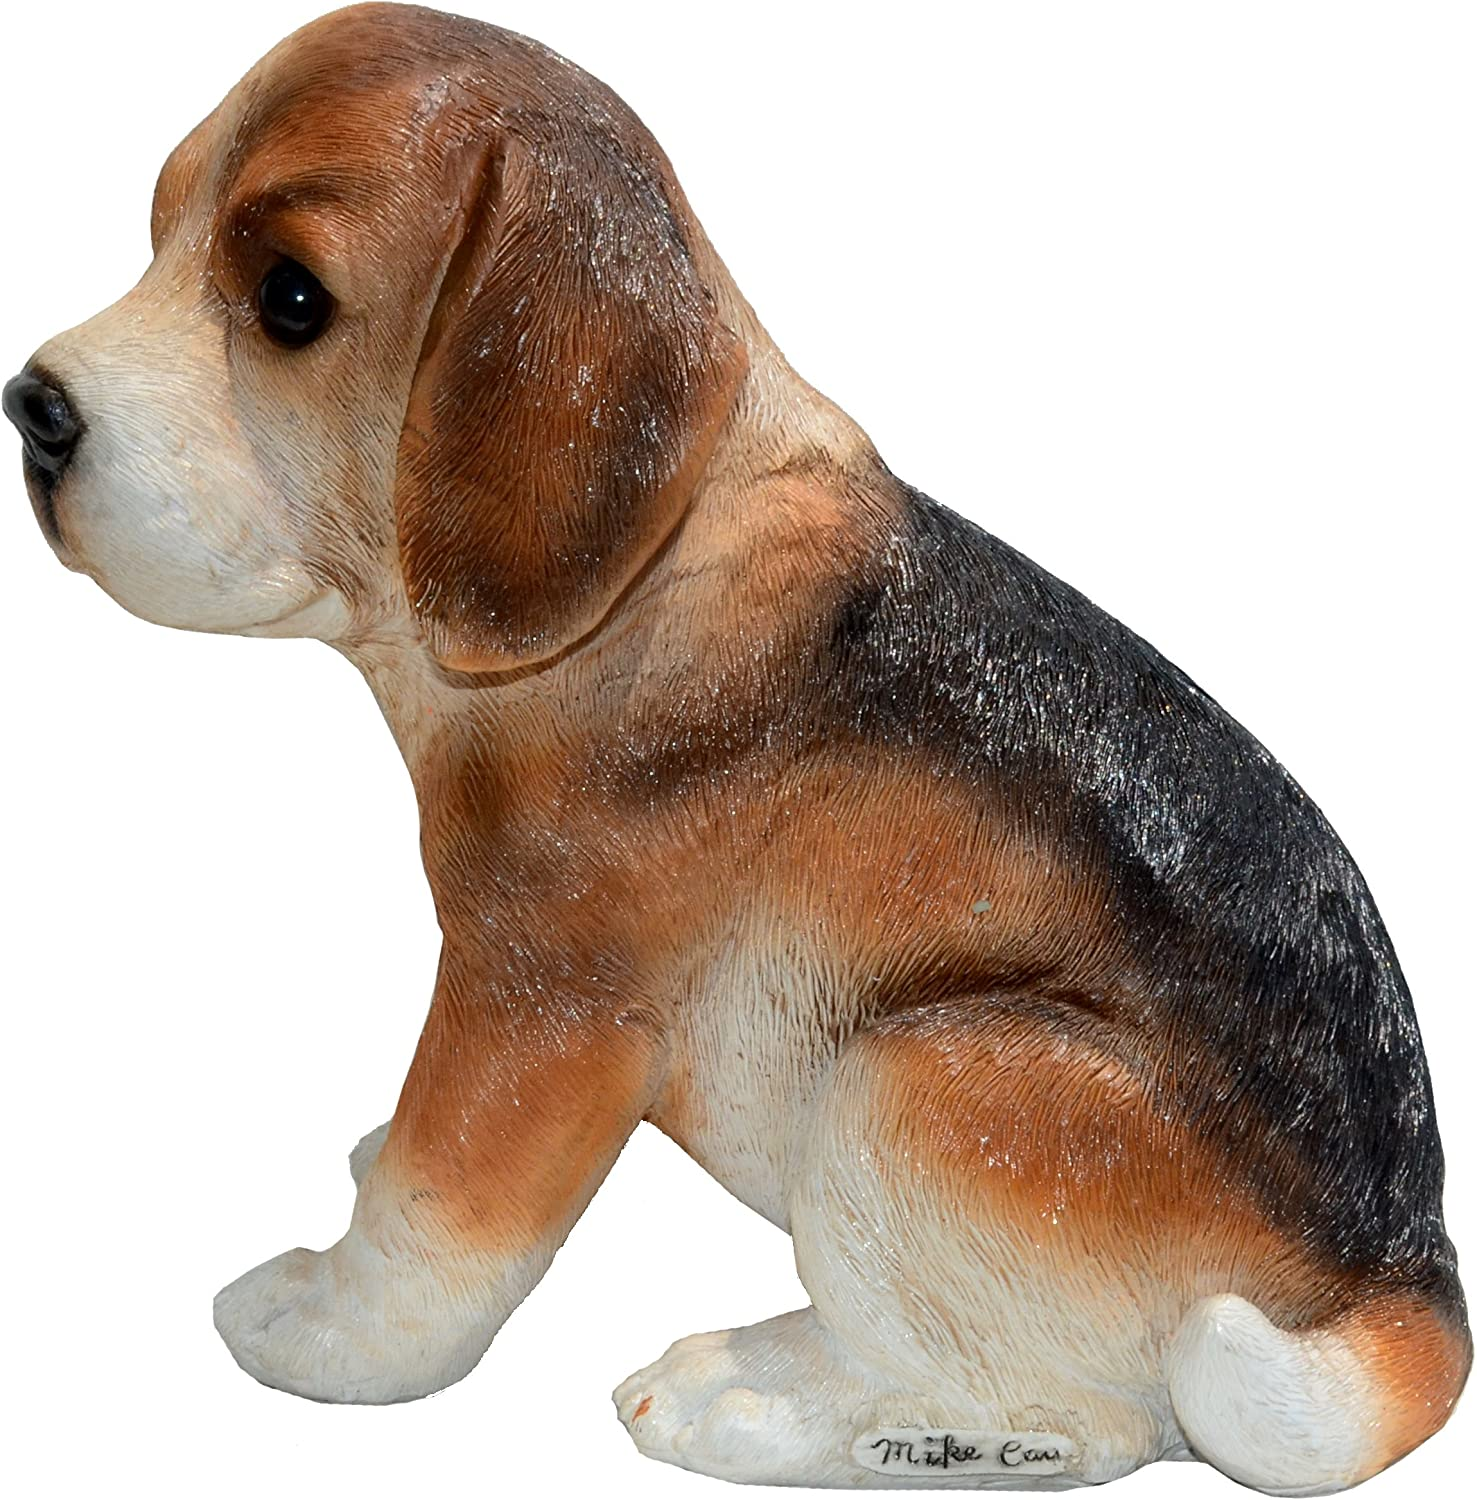 Michael Carr Designs Nosy-Beagle S Puppy Love Outdoor Dog Figurine for Gardens, patios and lawns (80097)